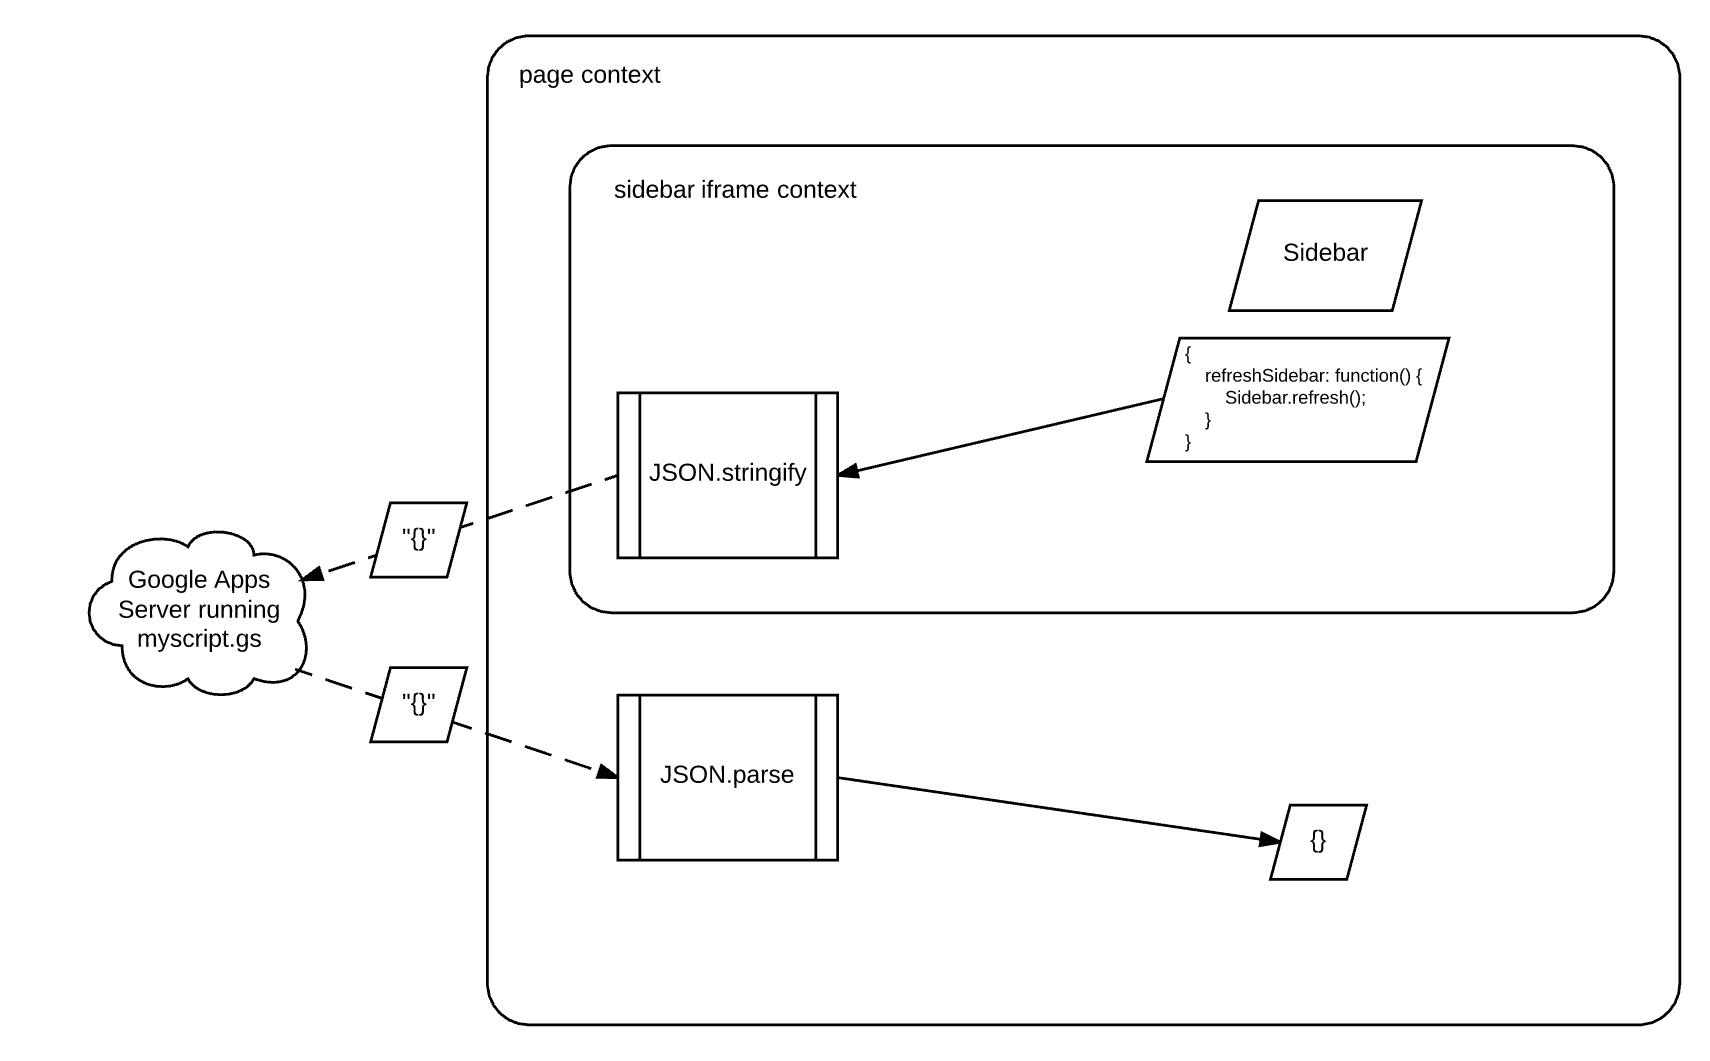 Diagram showing where serialization destroys closure when sending a JSON object between the sidebar and a dialog of a Google Apps Script add-on